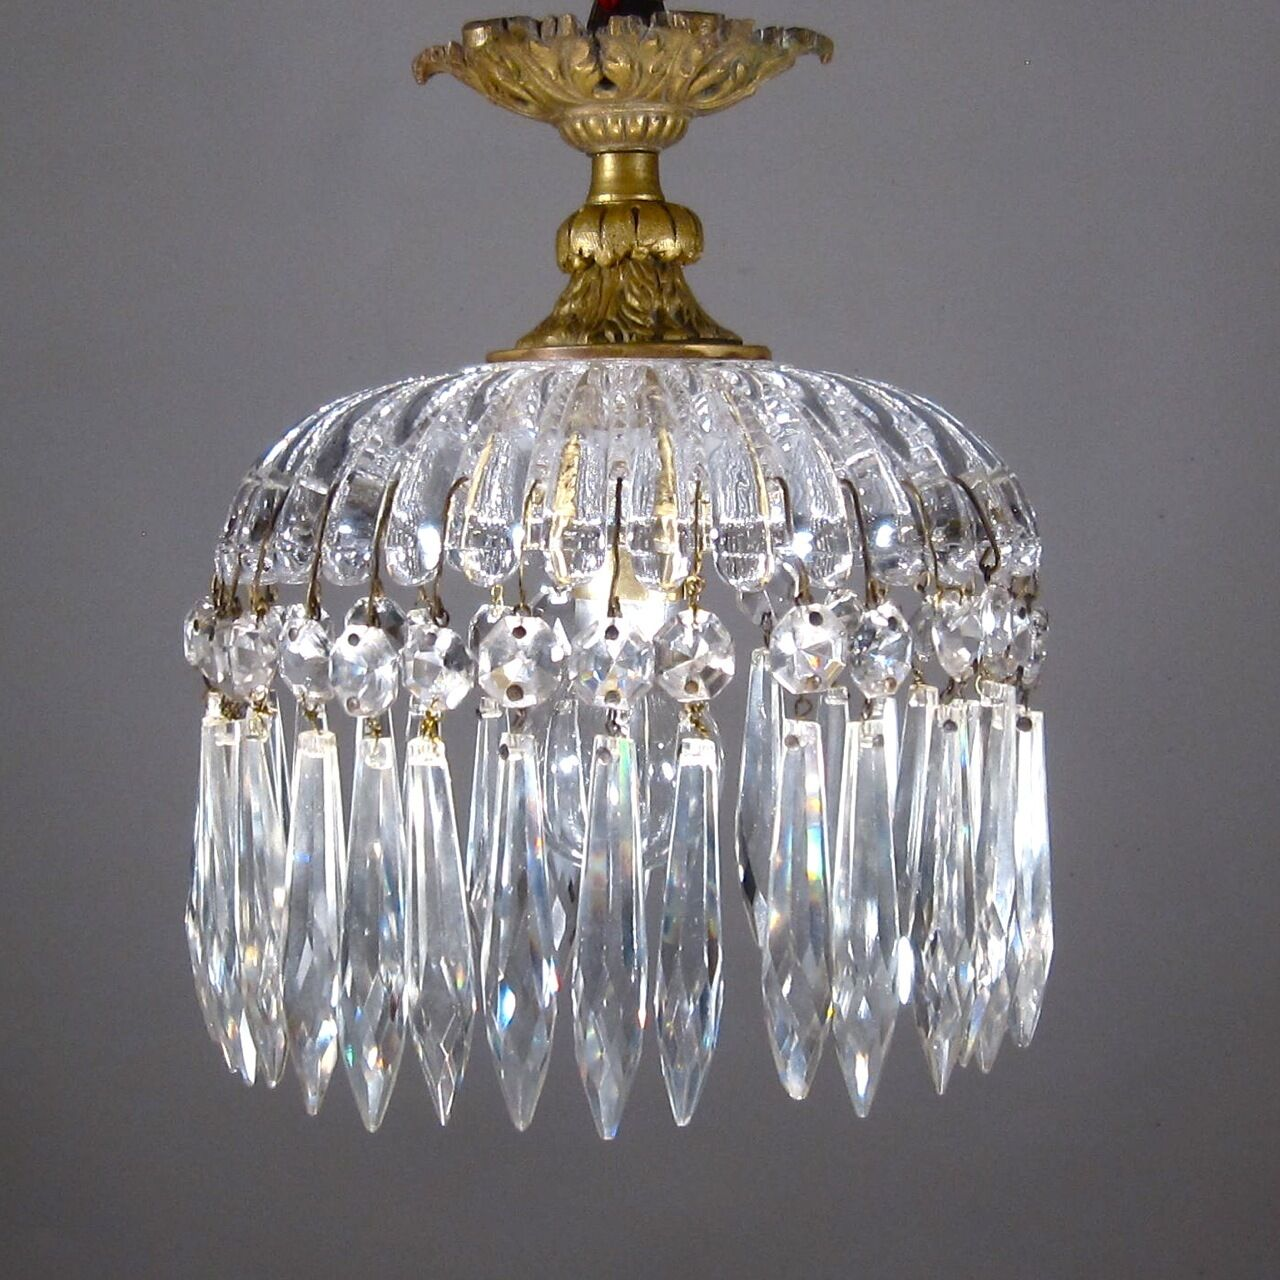 Antique FrenchBronze and Crystal Chandelier, Crystal Prisms, Signed Portieux